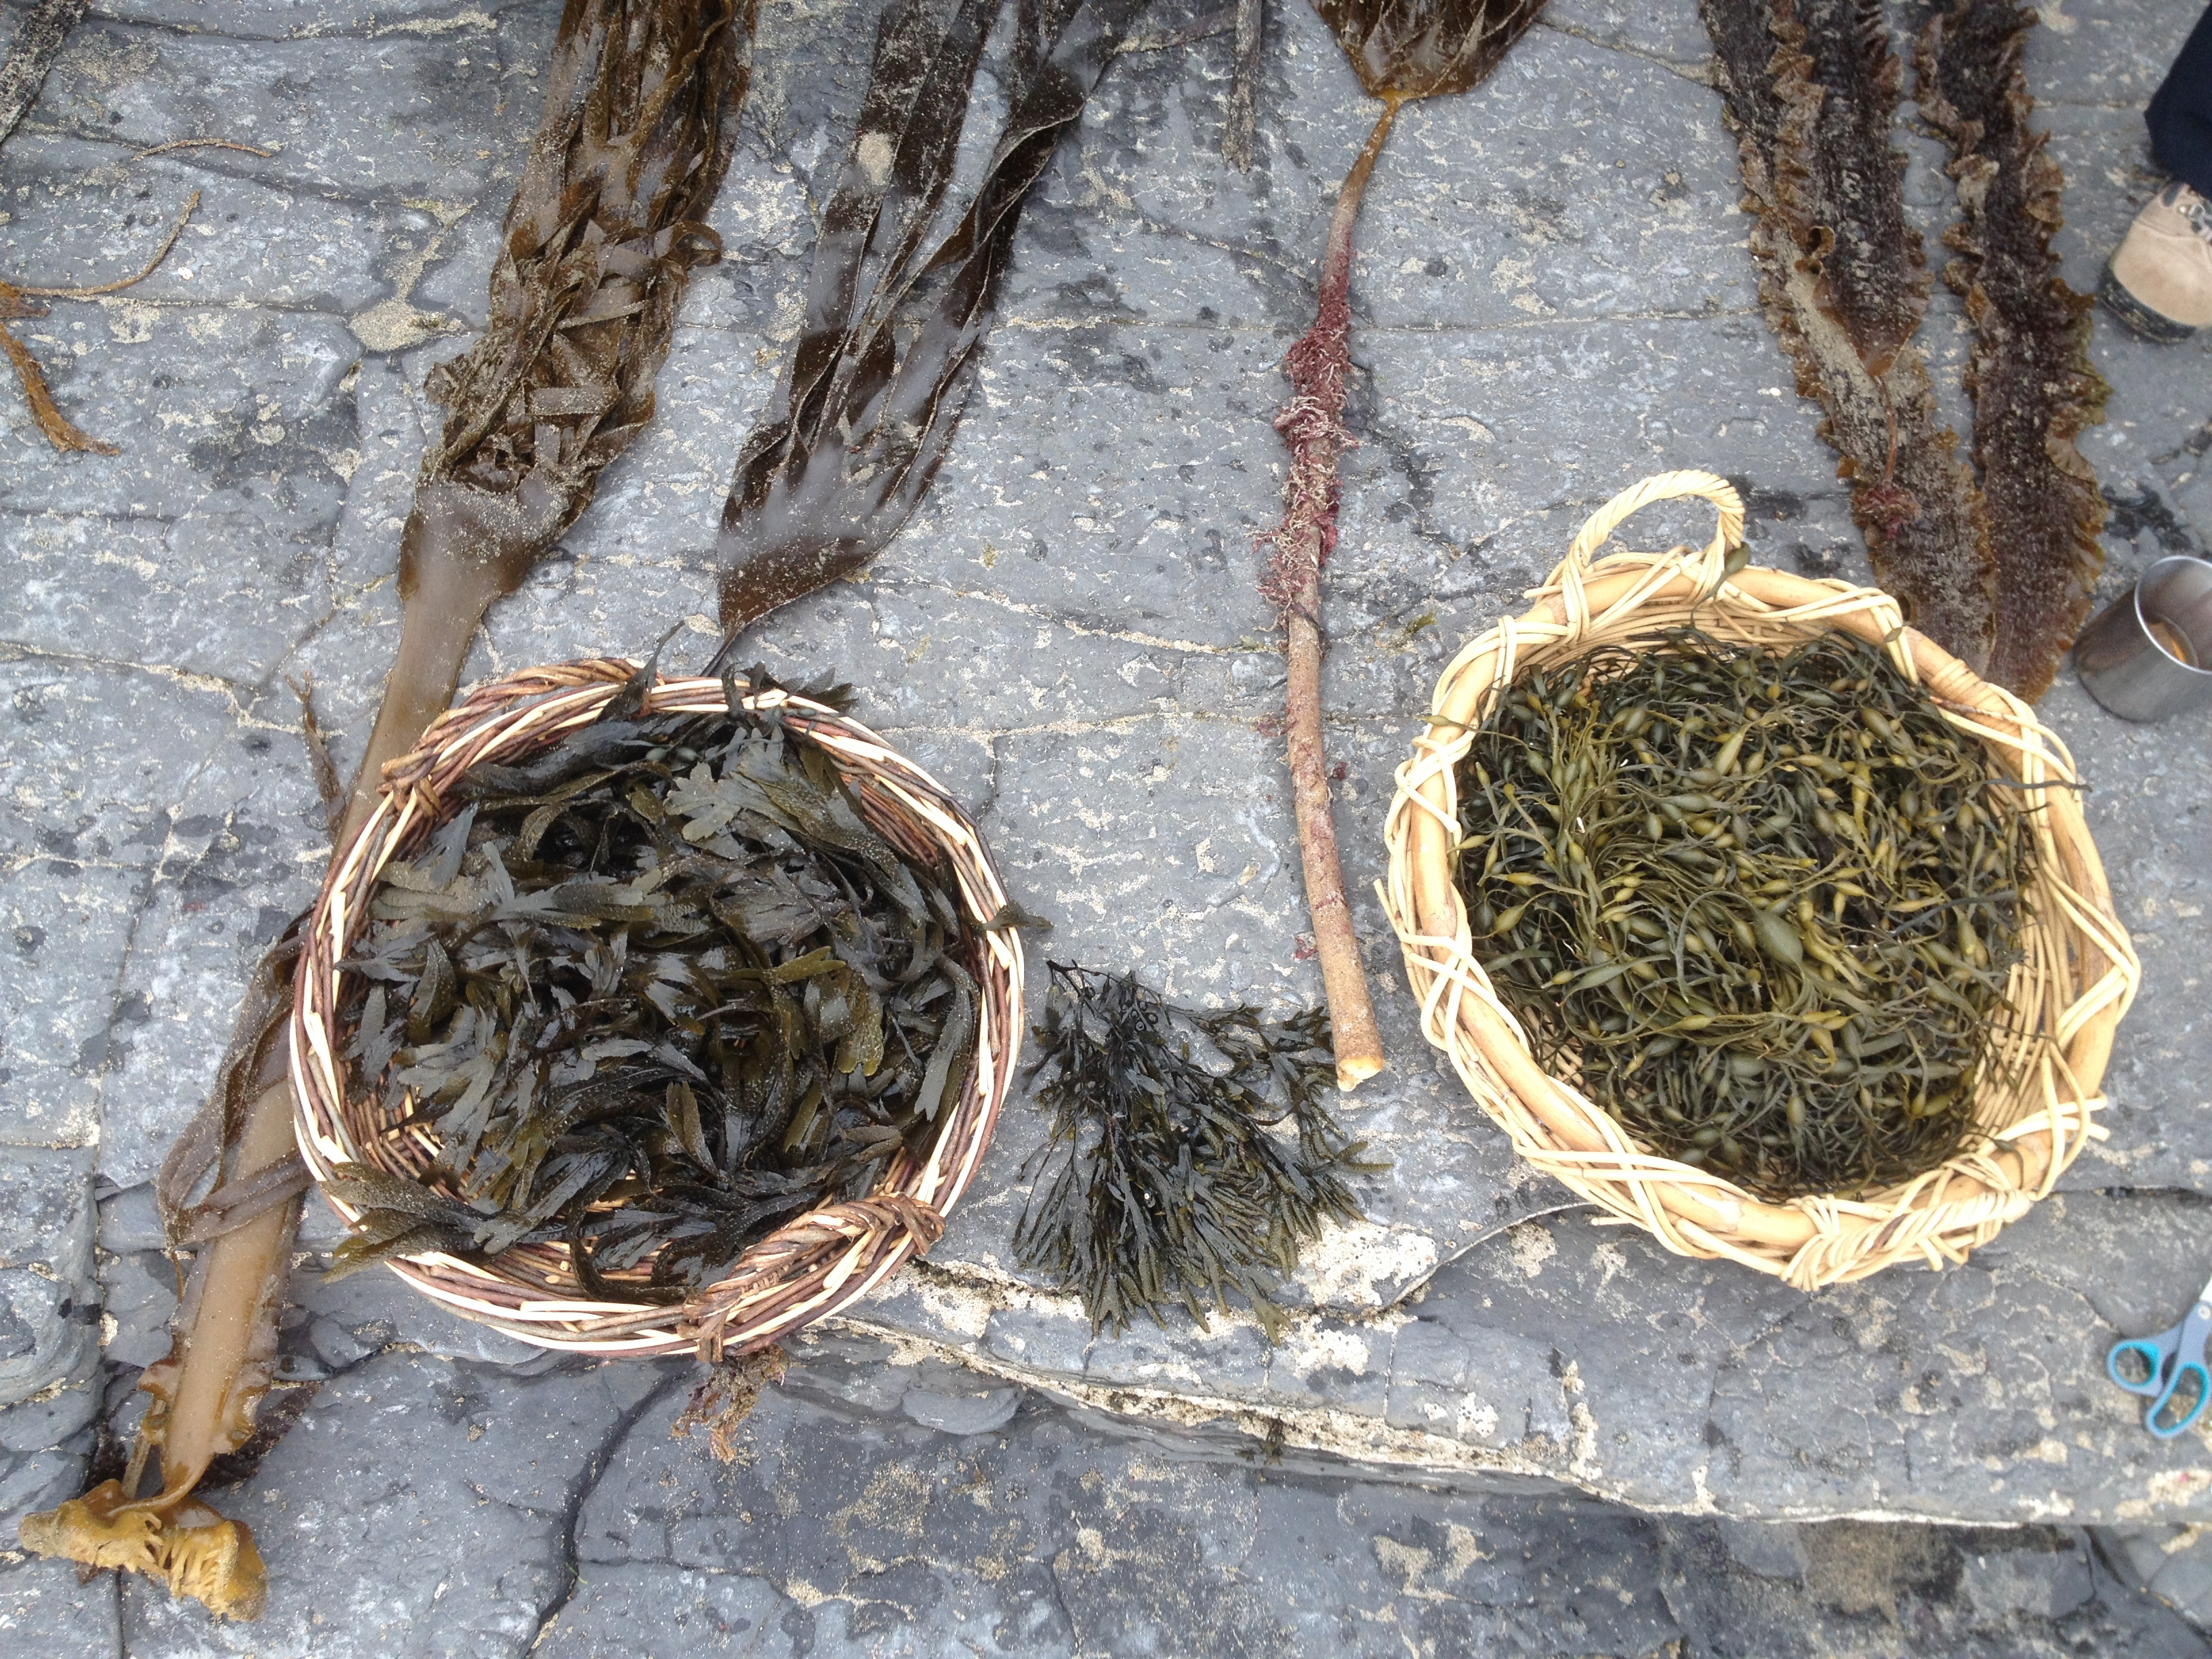 Recap on seaweeds -some torn off rocks and washed up in storm